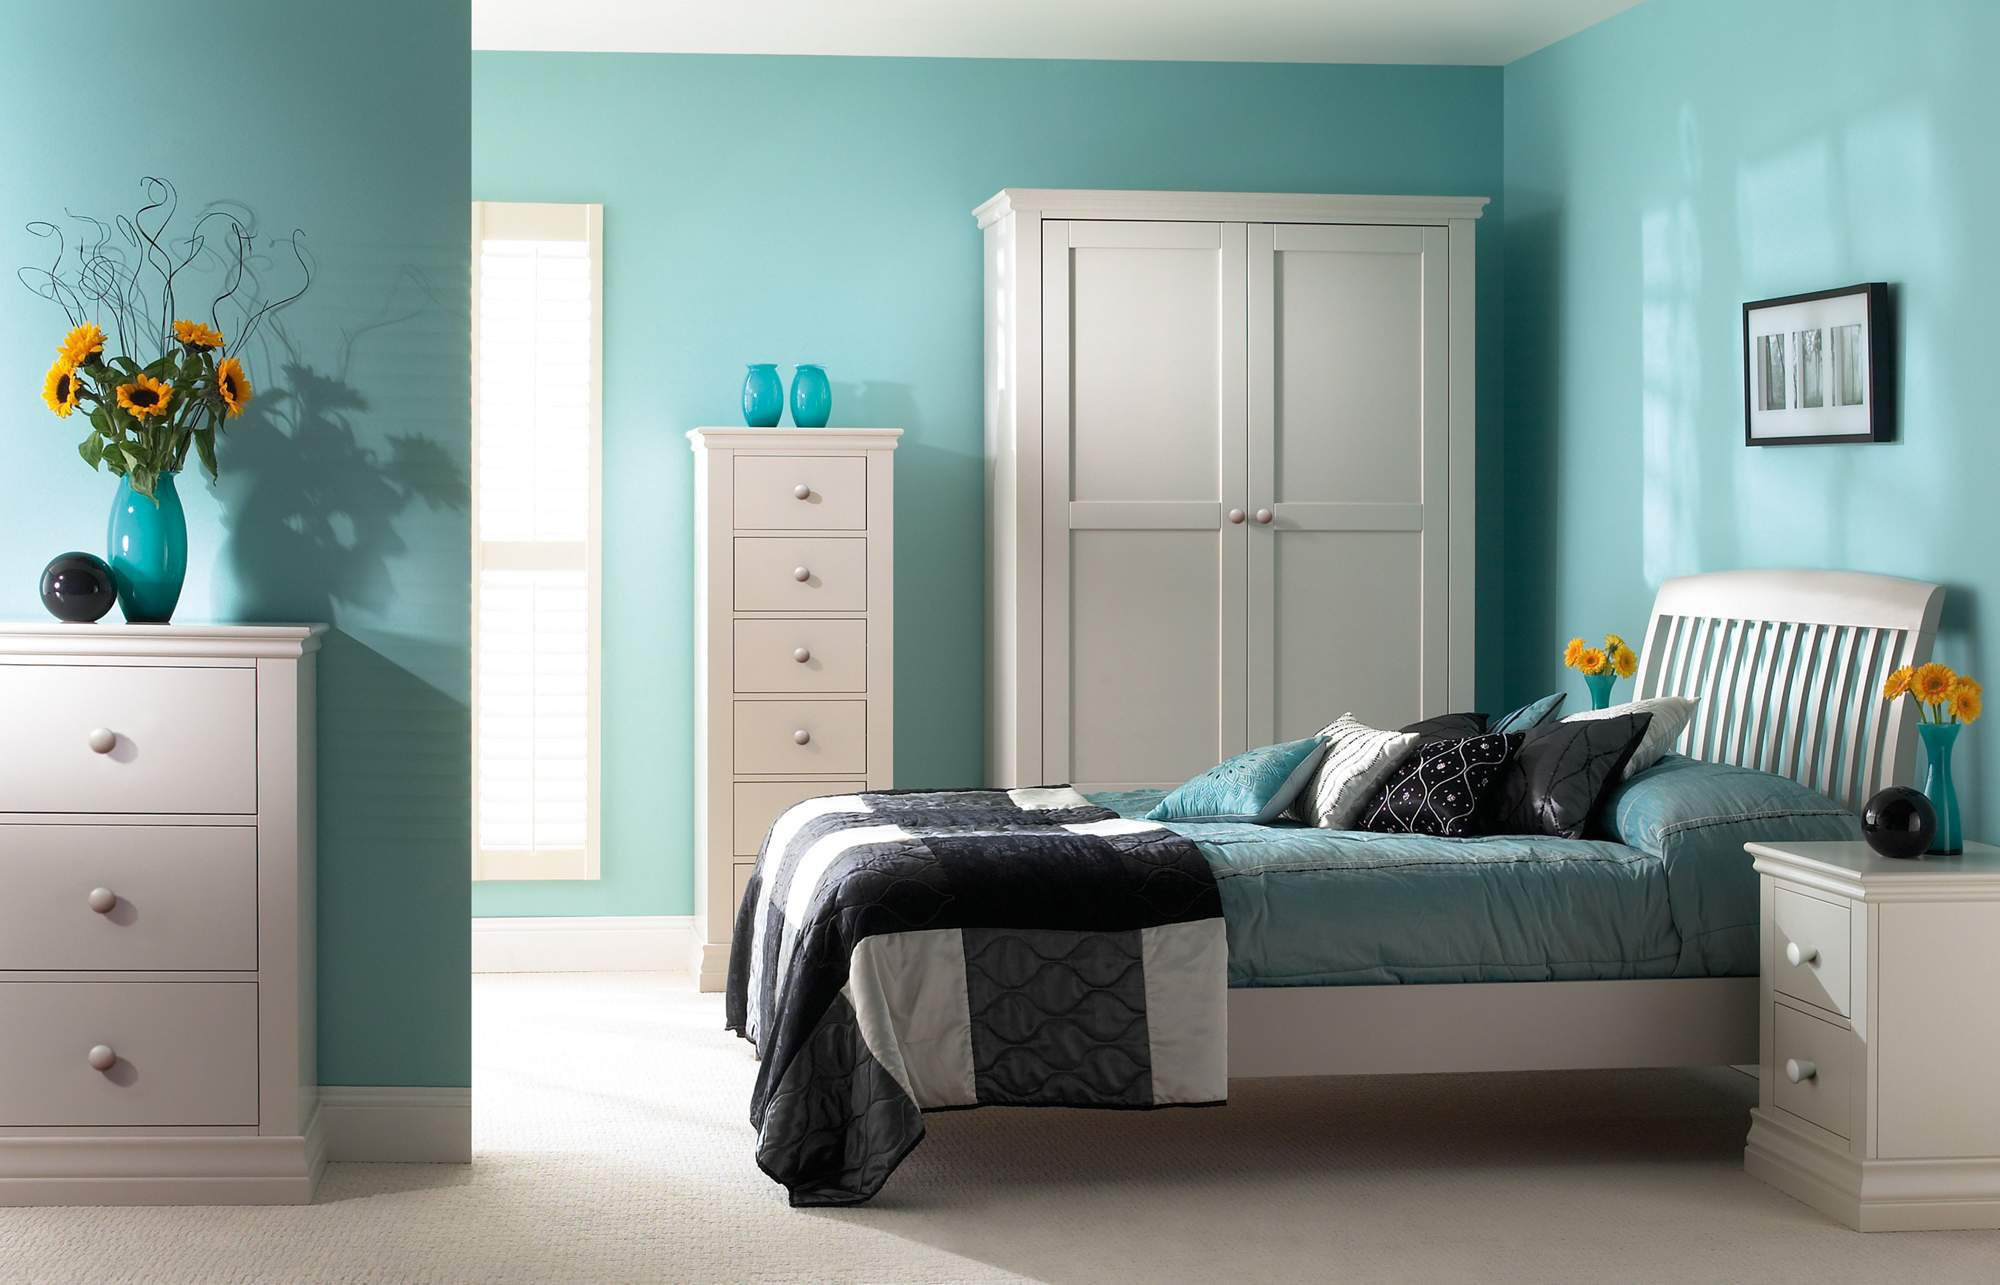 Hanborough bedroom furniture range - Bedroom Furniture - House of Fraser